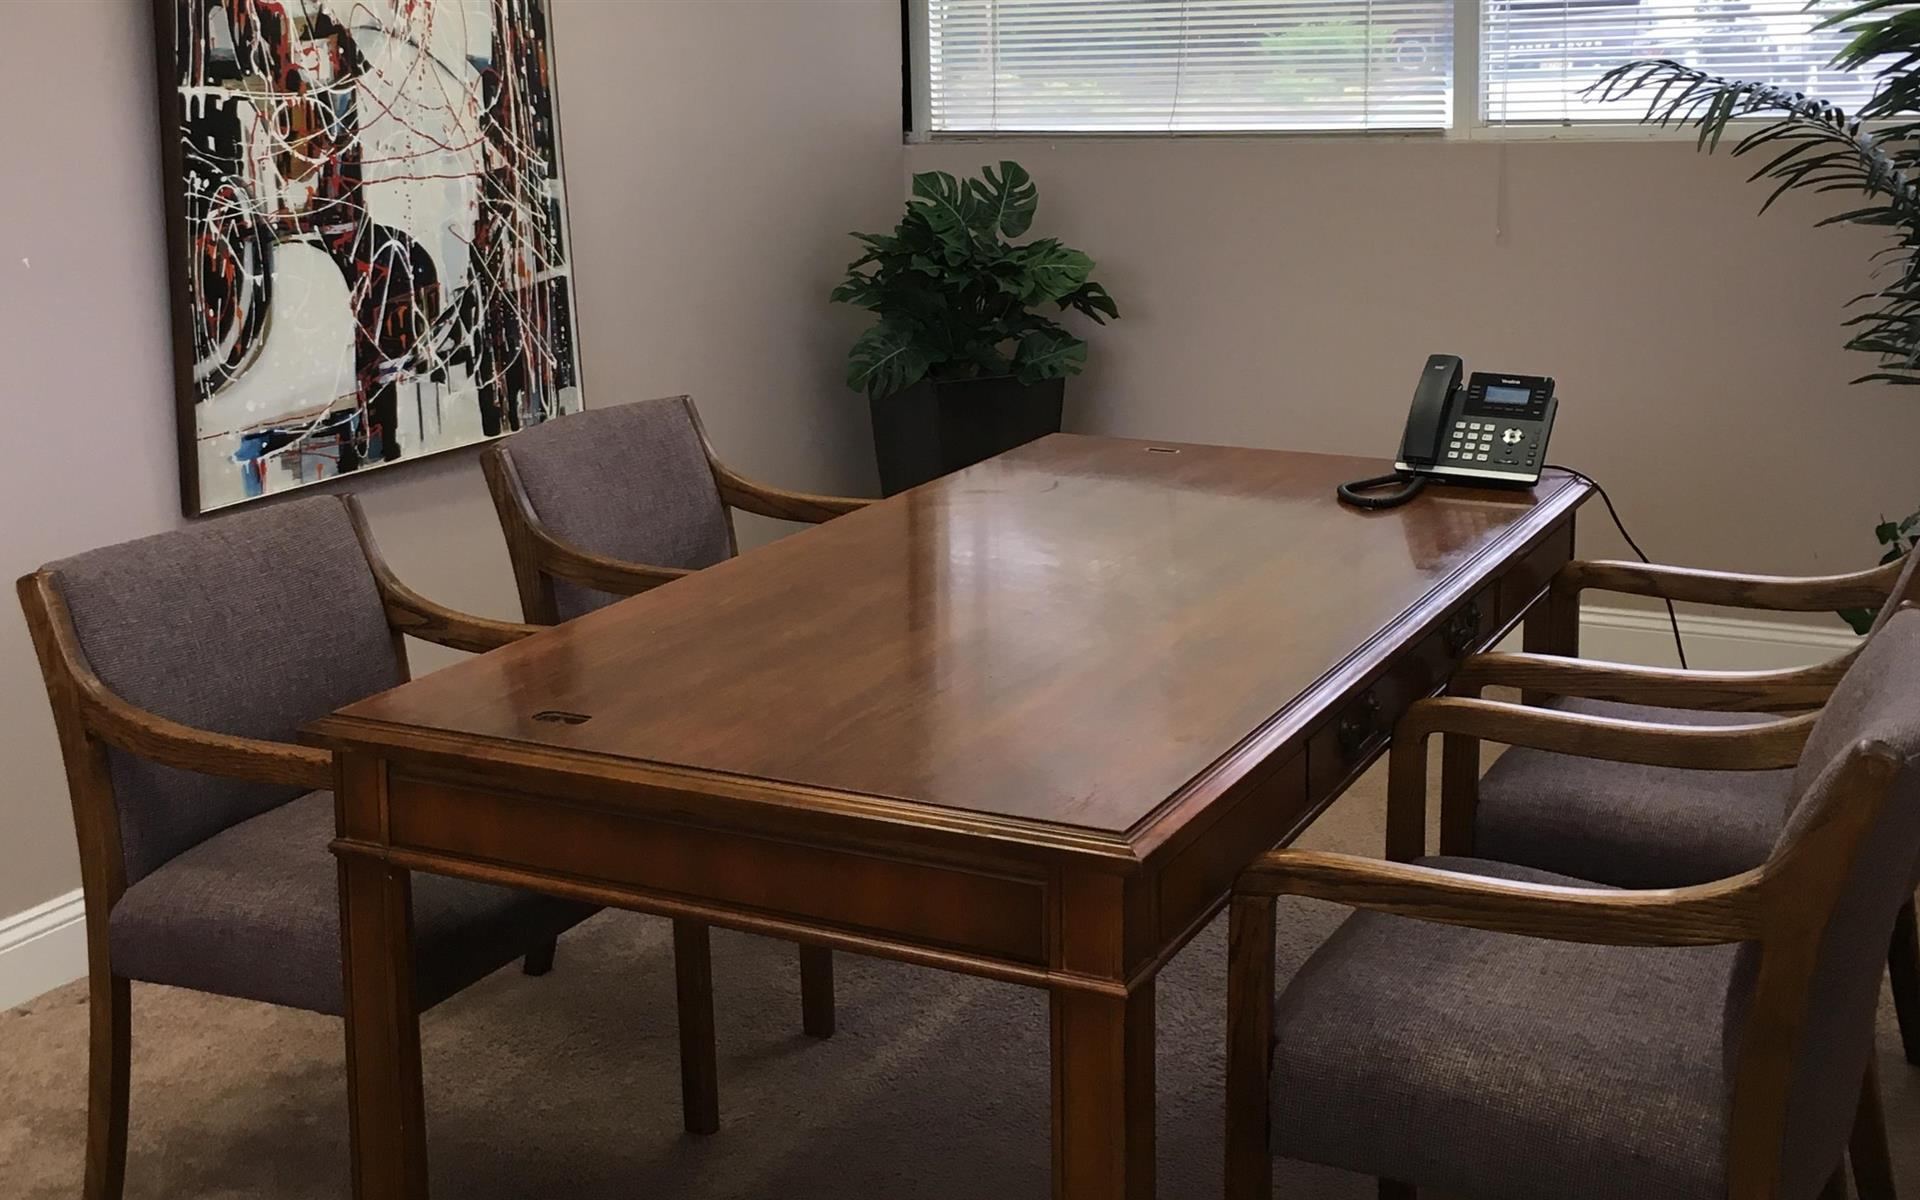 Upper Saddle River Offices - NJ - Meeting Room #7